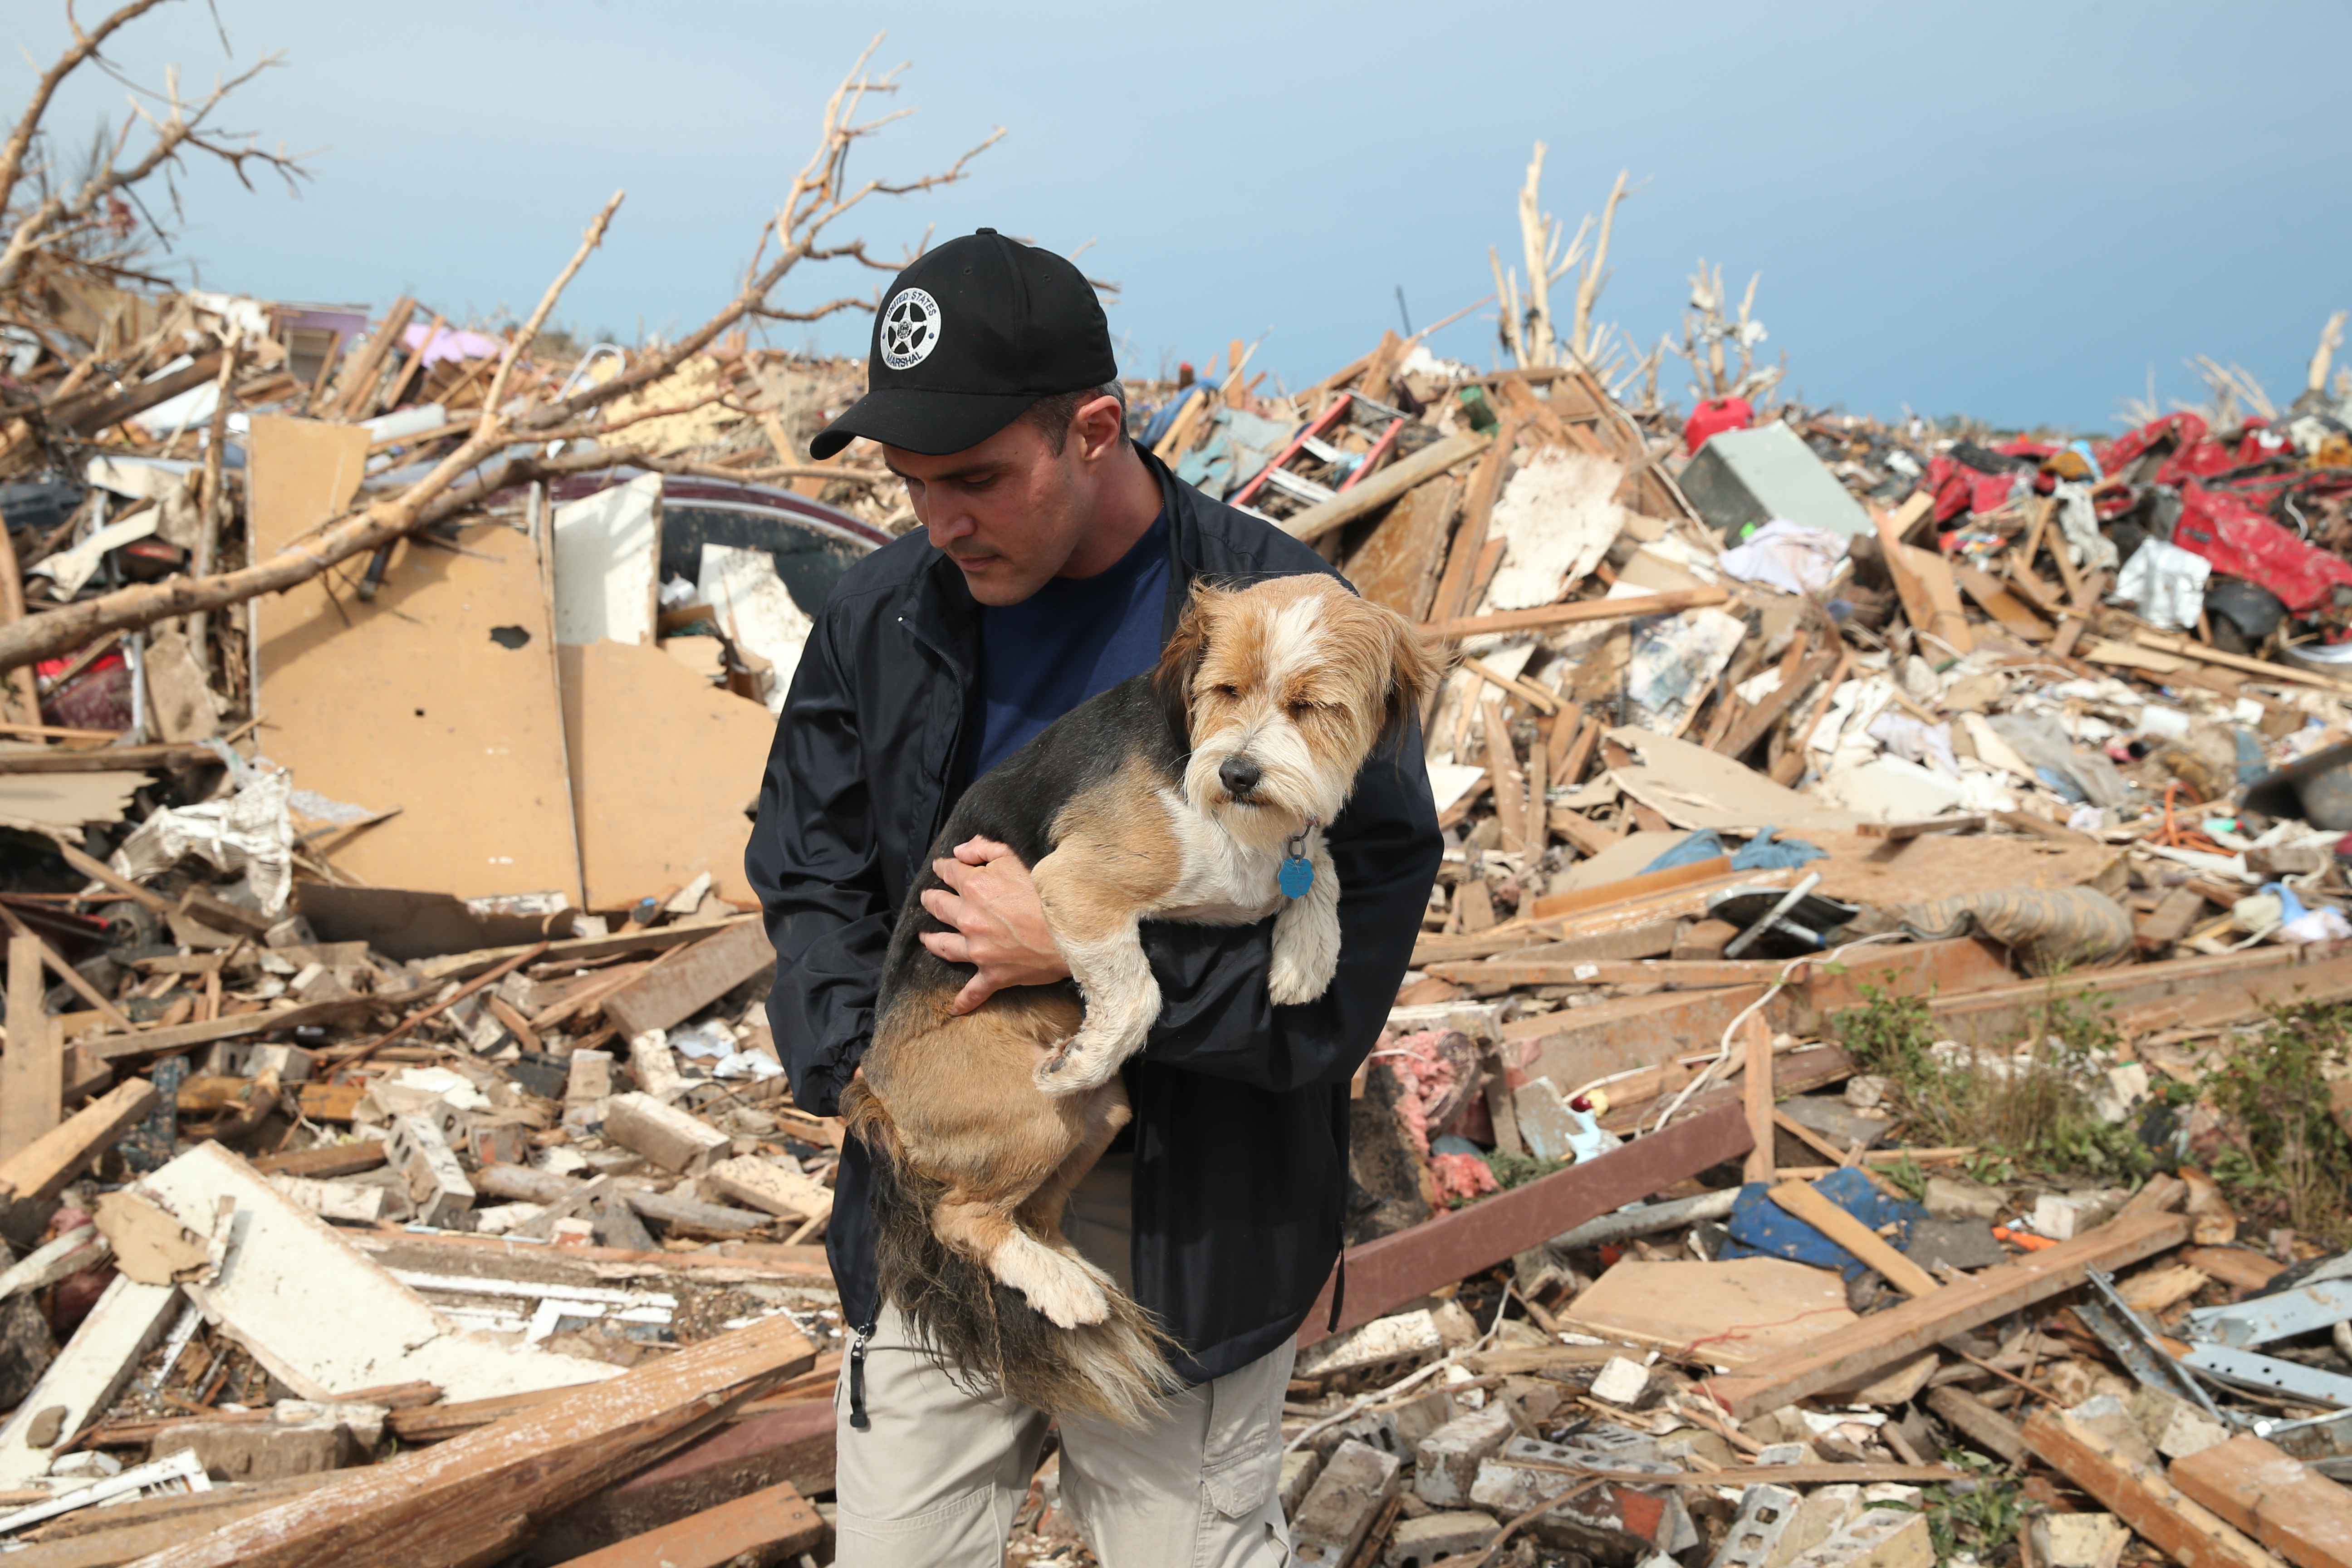 Sean Xuereb recovers a dog from the rubble of a home that was destroyed by a tornado on May 21, 2013 in Moore, Okla.